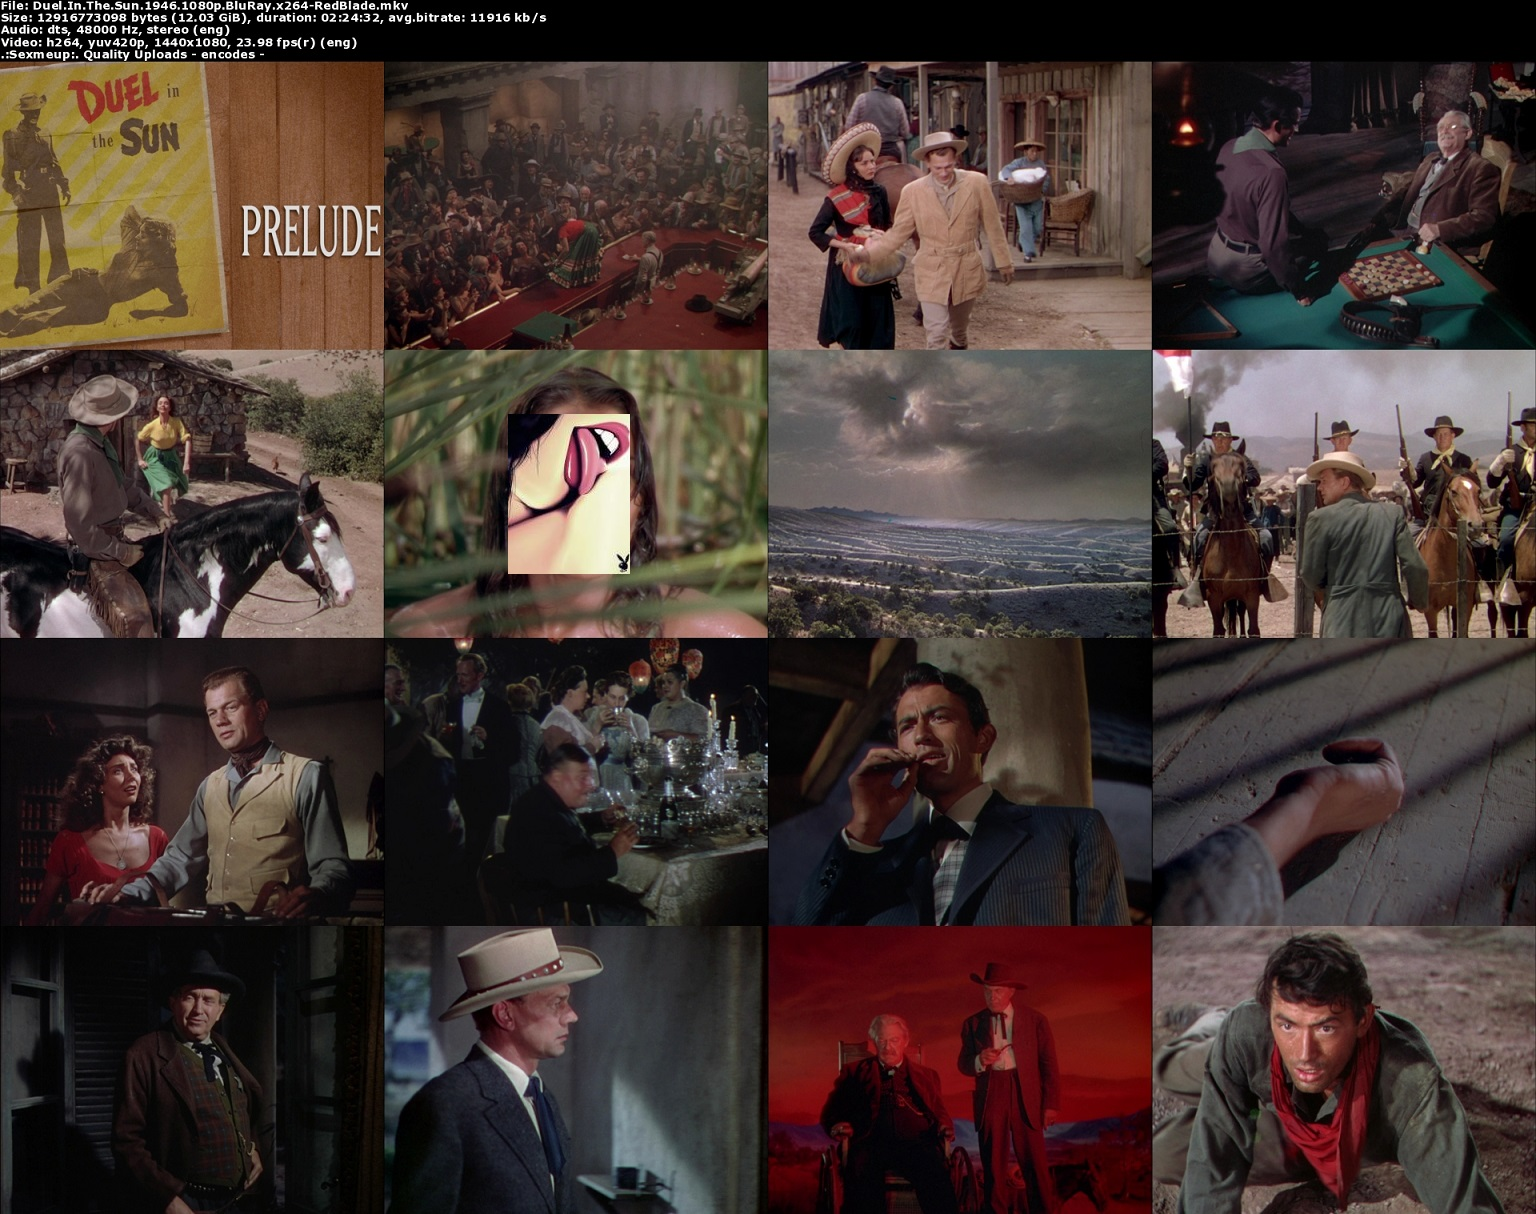 Duel.In.The.Sun.1946.1080p.BluRay.x264-R